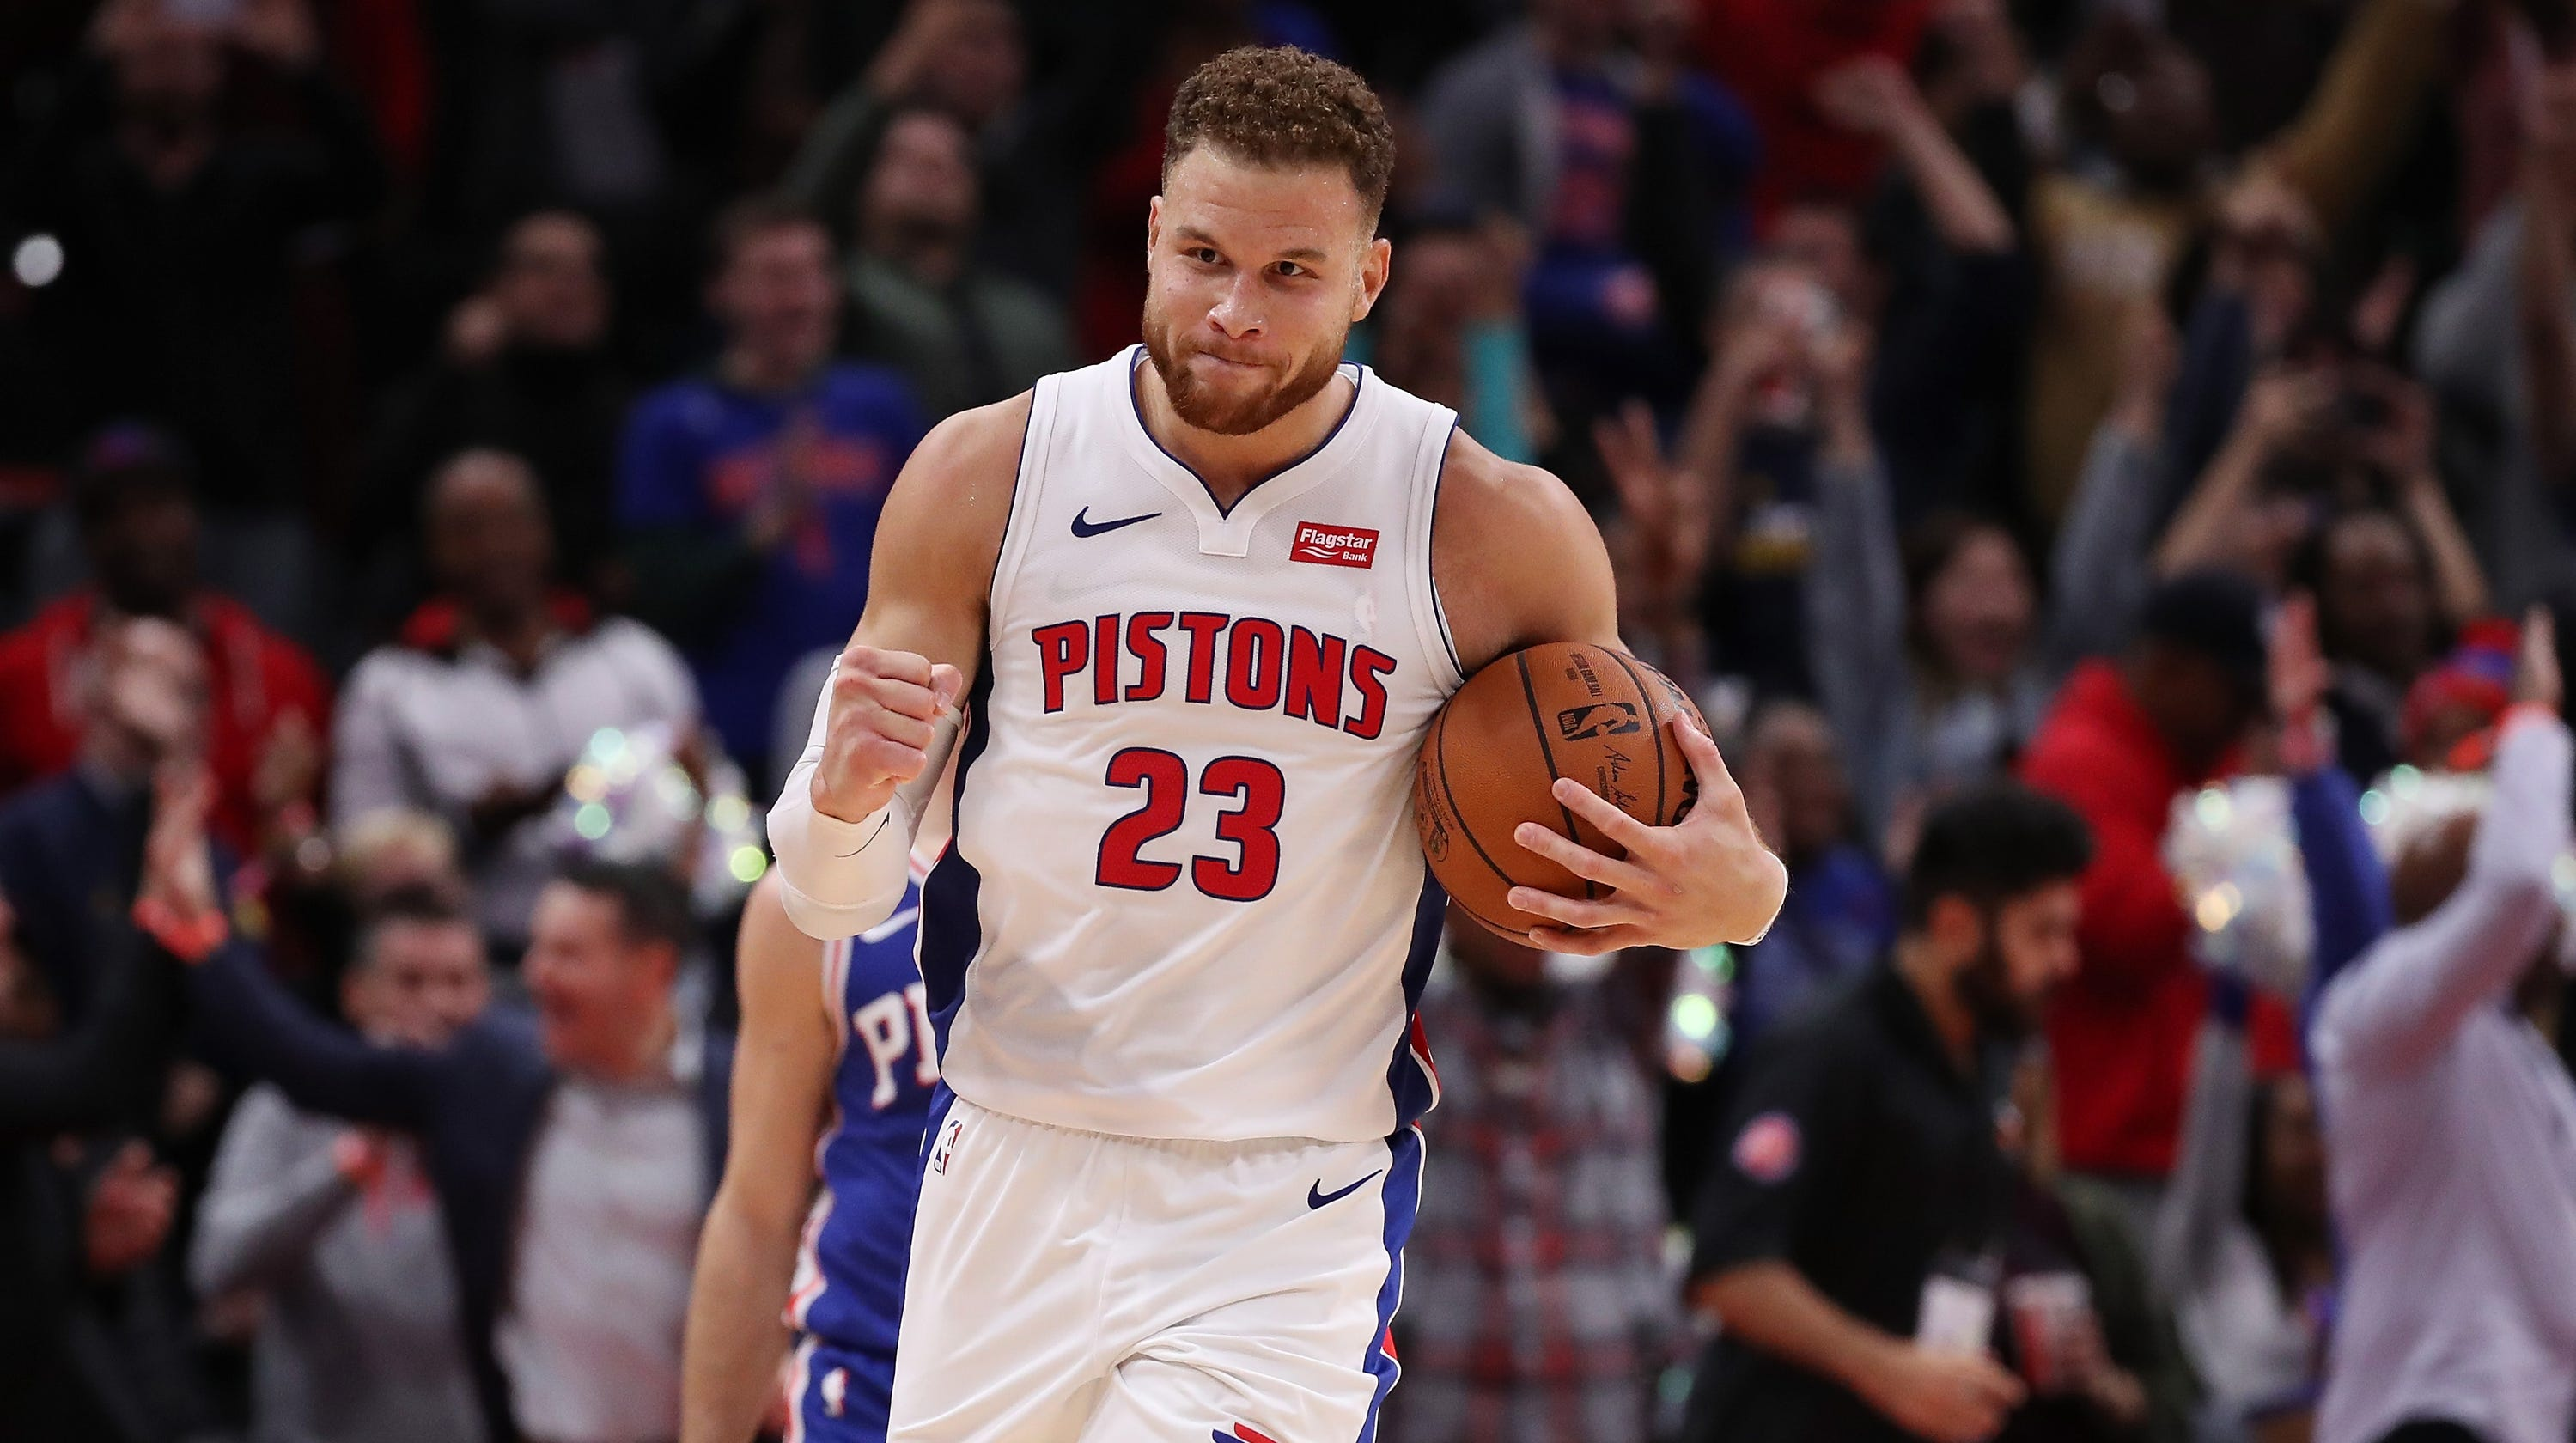 45cecd93407b Blake Griffin s career-high 50 points powers Pistons to overtime win over  76ers